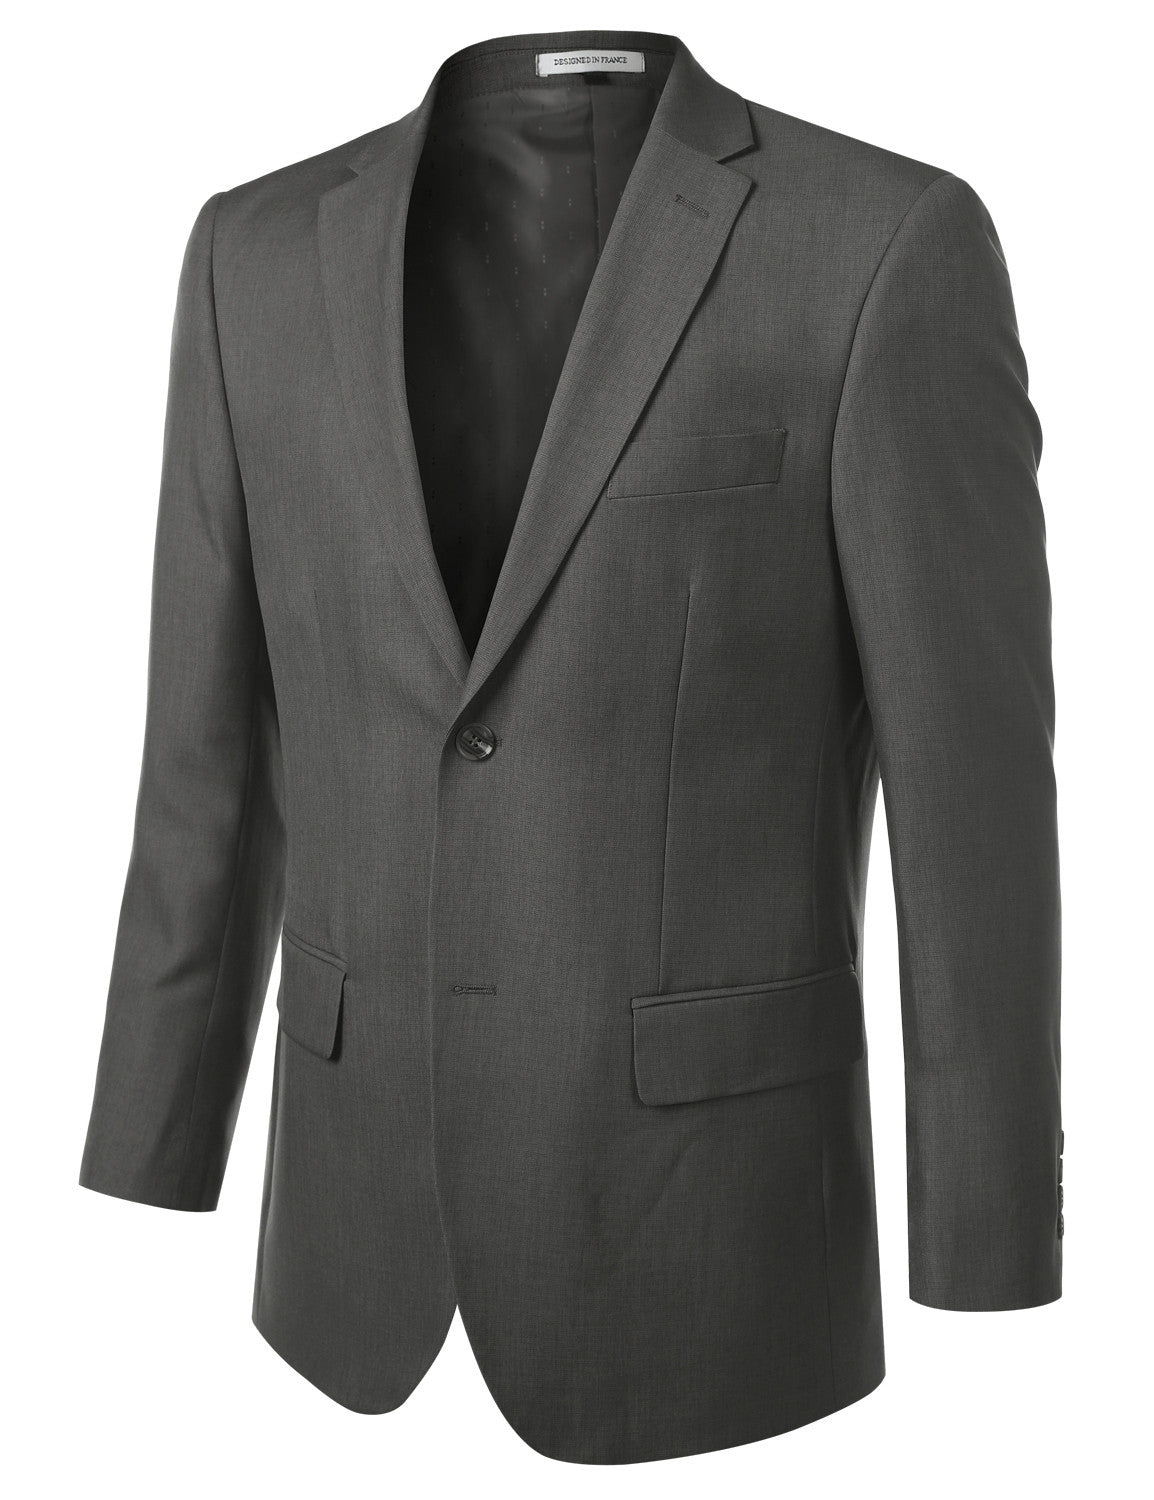 GRAY Modern Fit 2 Piece Suit- MONDAYSUIT